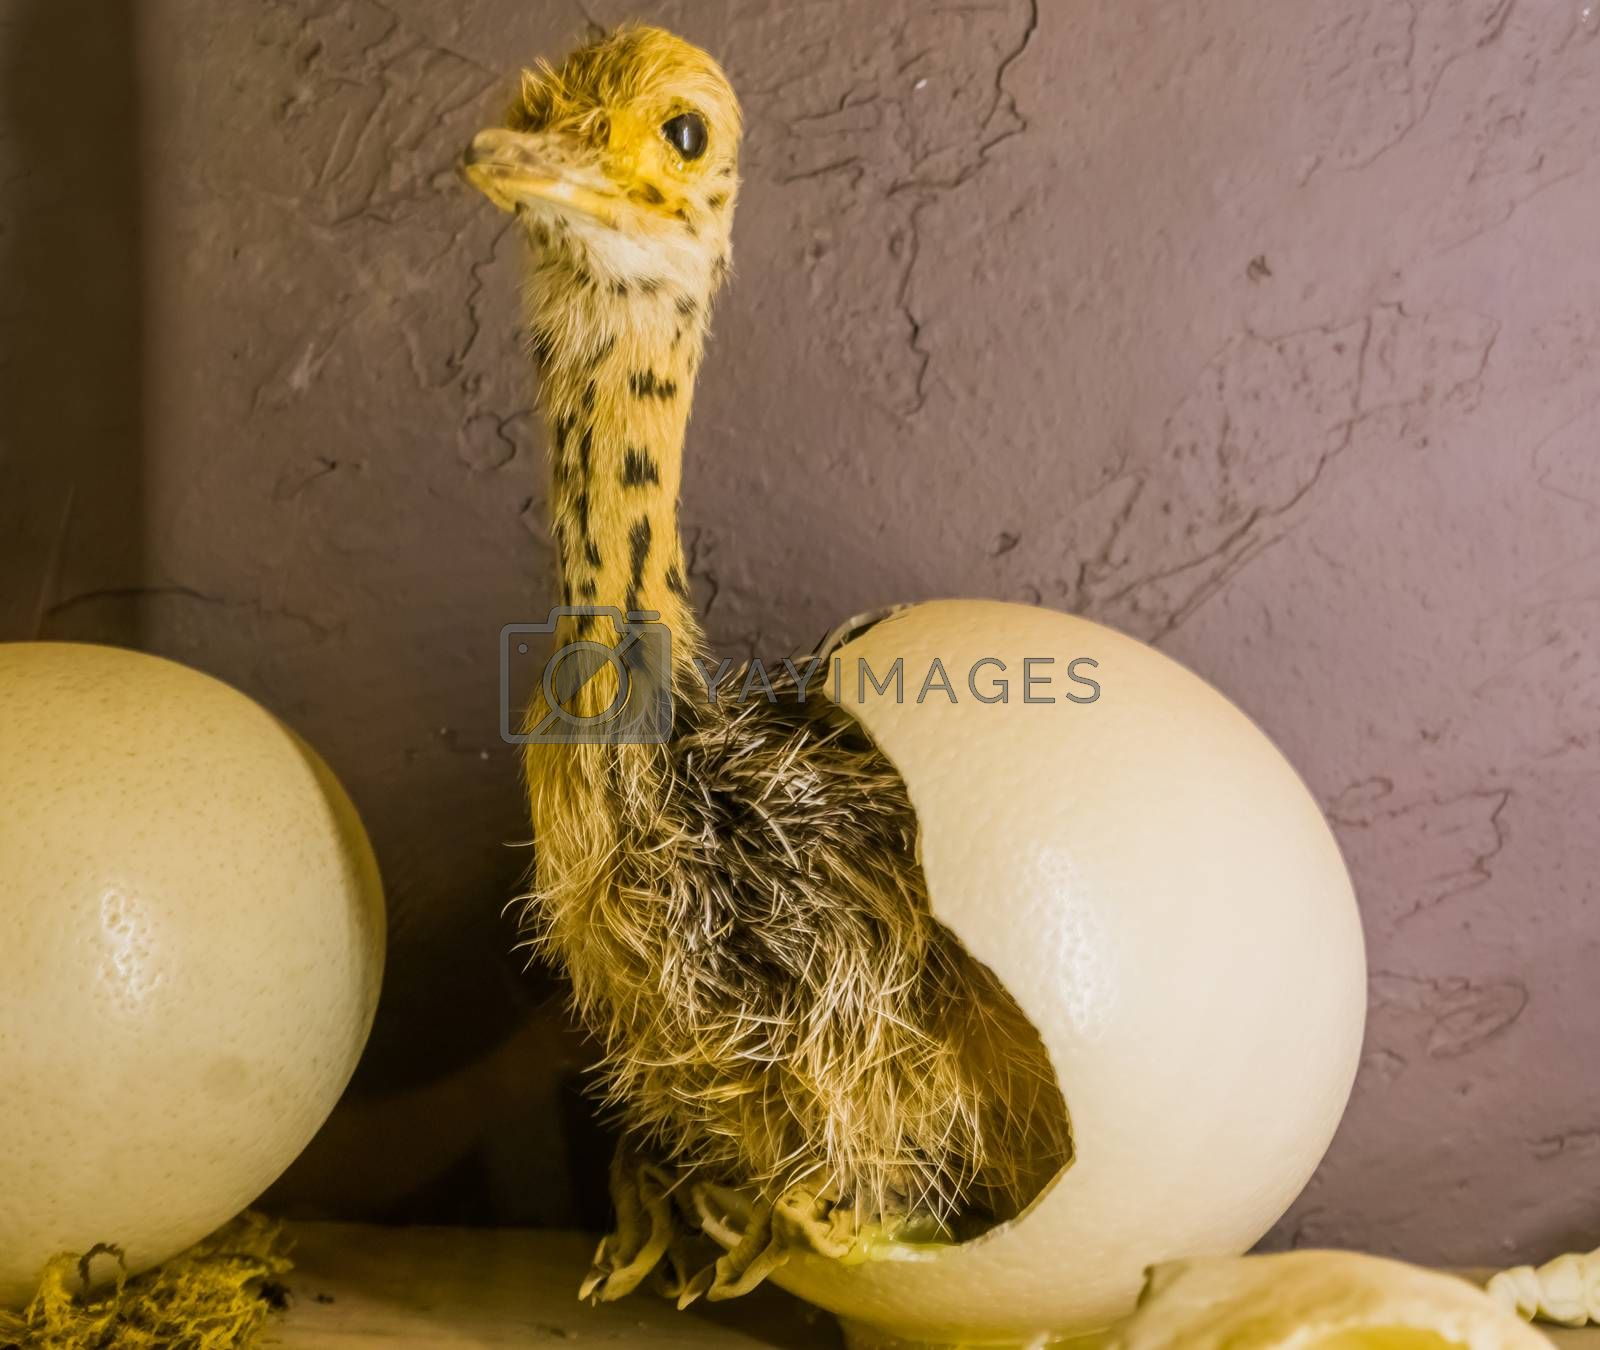 baby ostrich coming out of a hatched egg, birth process of a flightless bird, stuffed animals and decorations